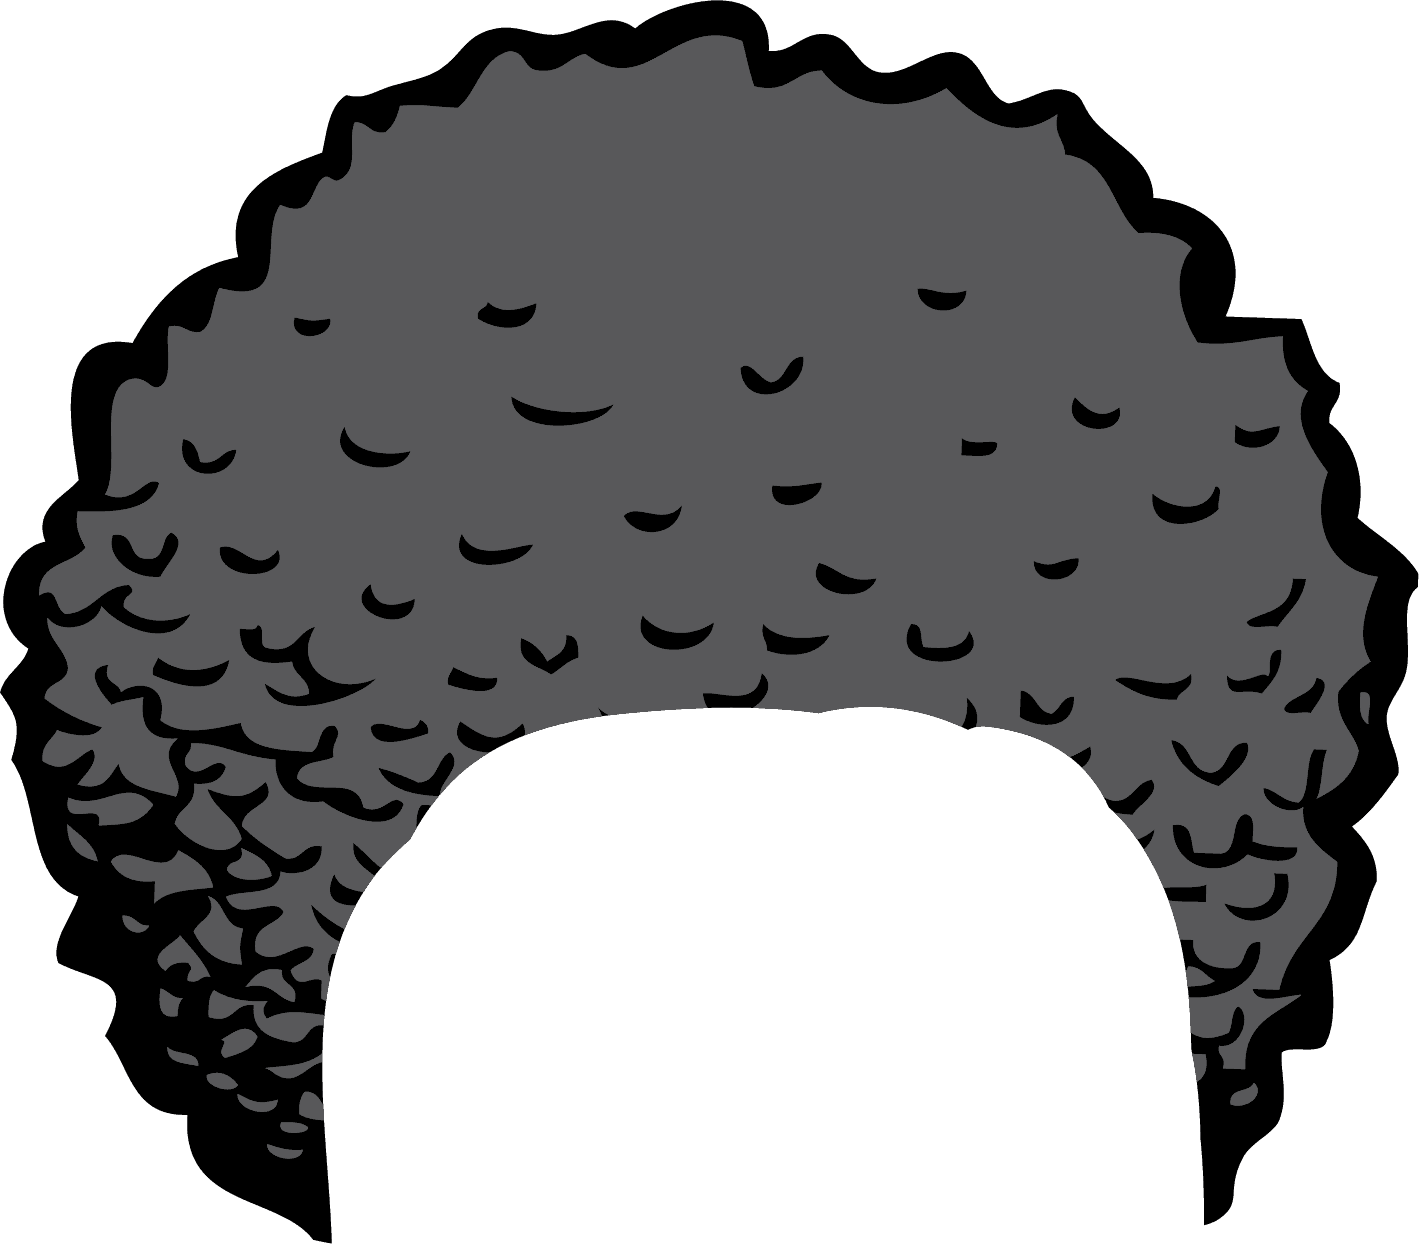 Crazy Hair Day Clipart - ClipArt Best